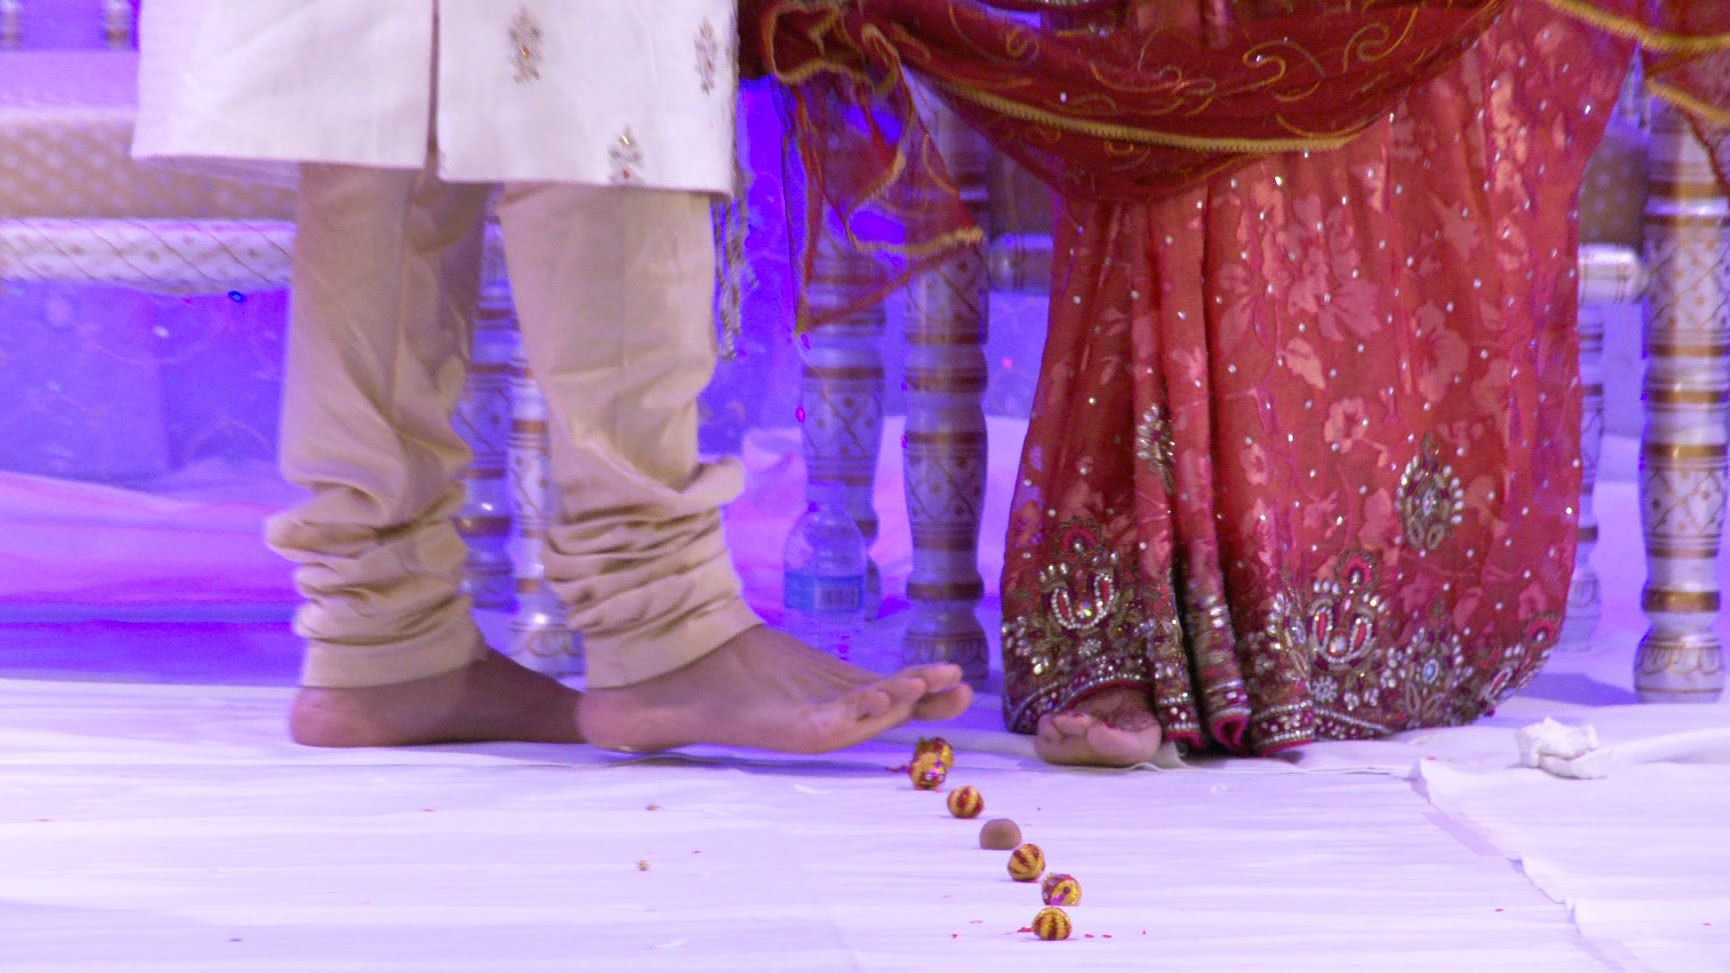 The Seven Steps or 7 Blessings Ceremony An Indian Hindu Wedding Ceremony